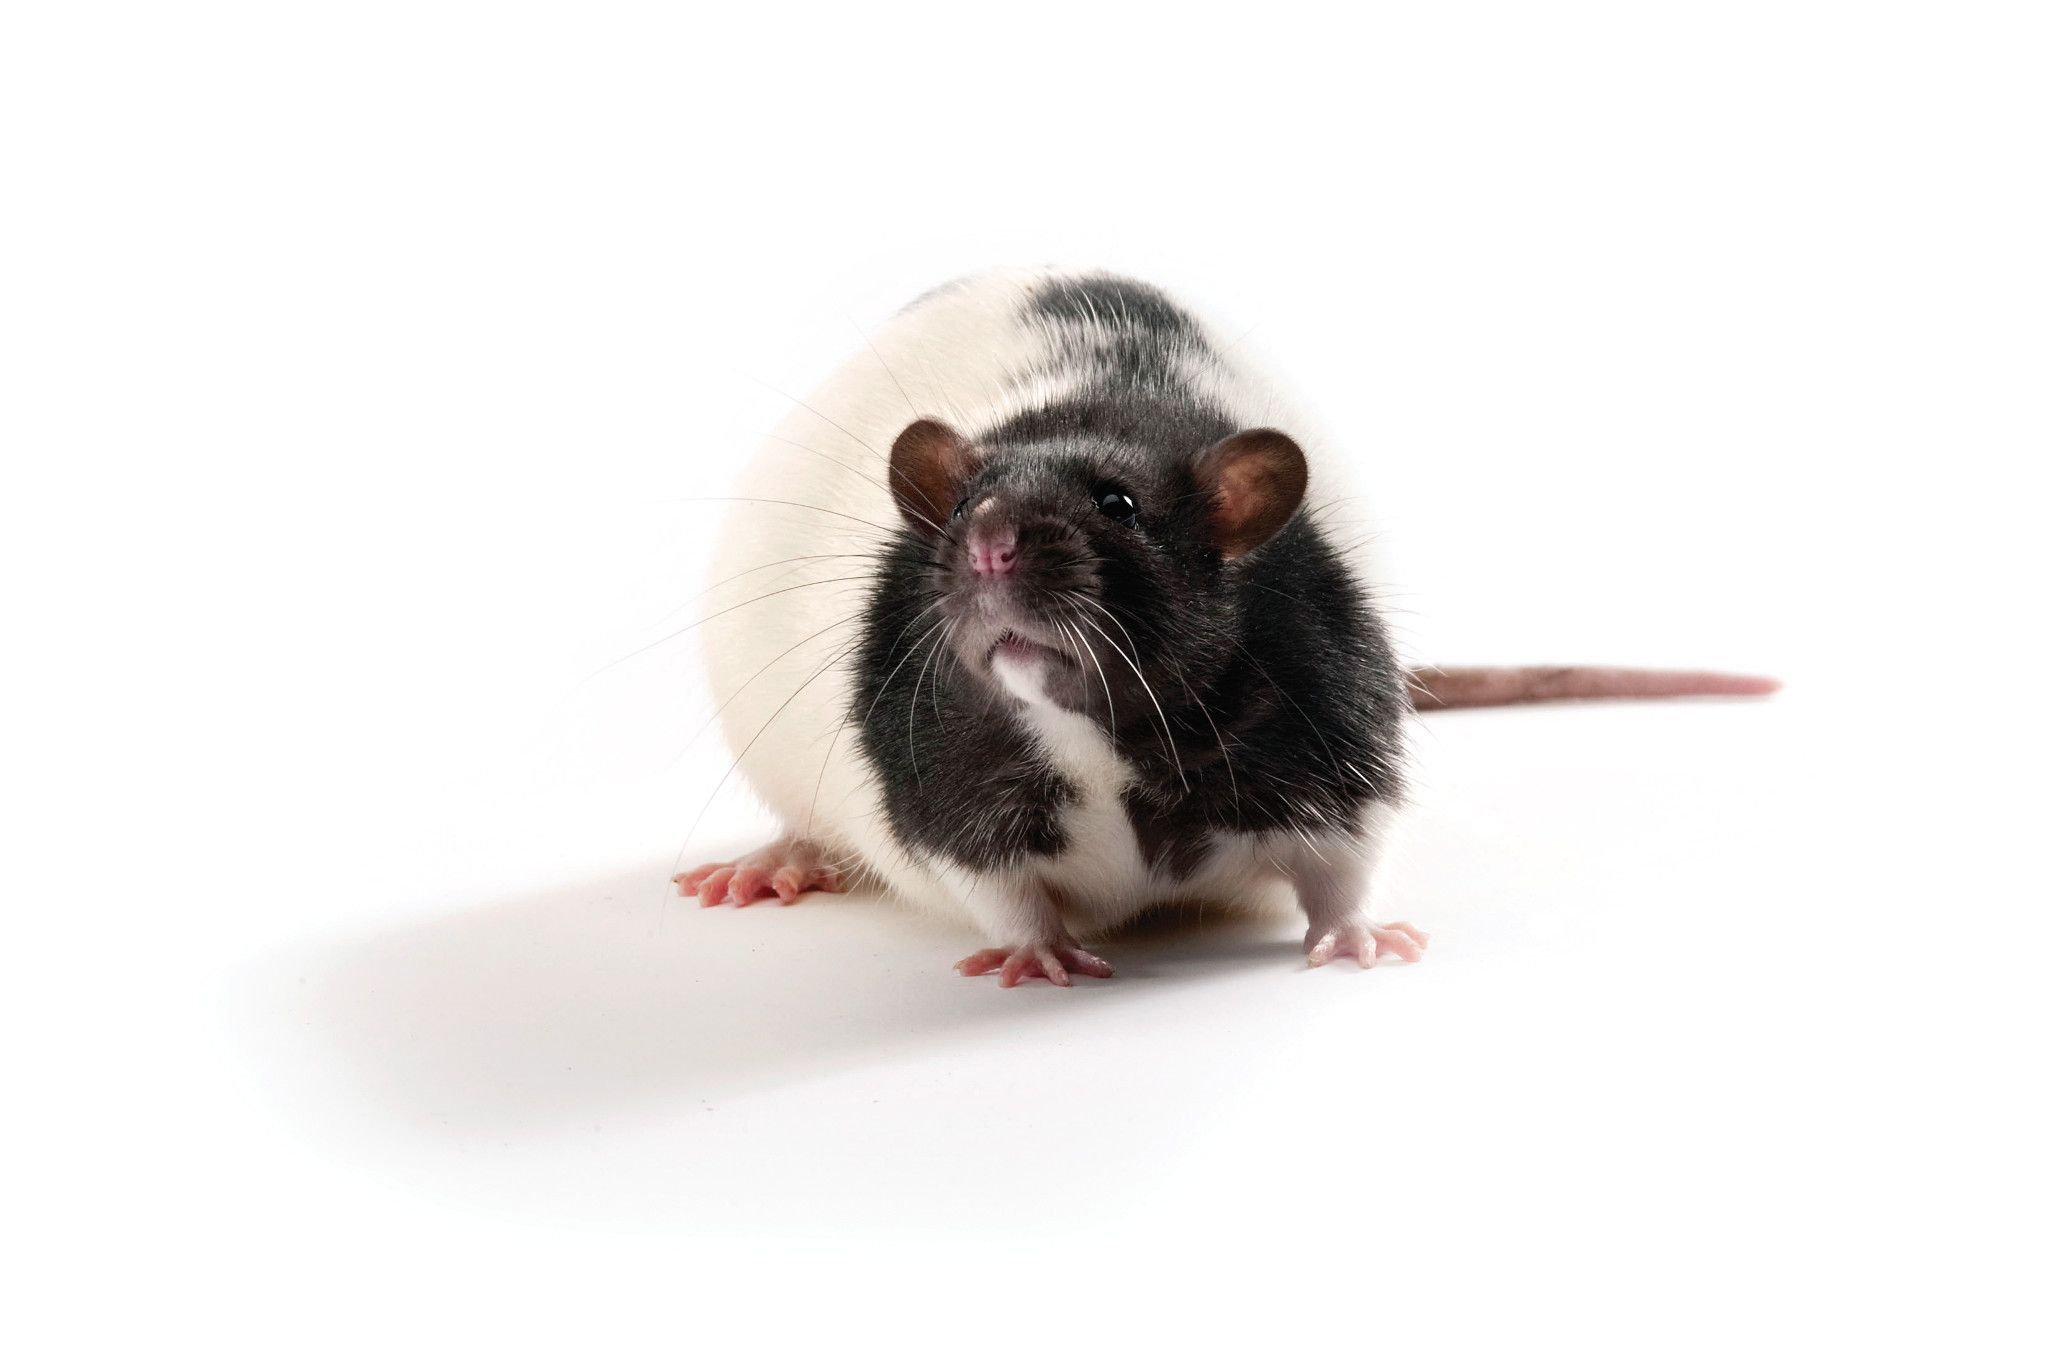 Zucker Diabetic Sprague-Dawley (ZDSD) Rat